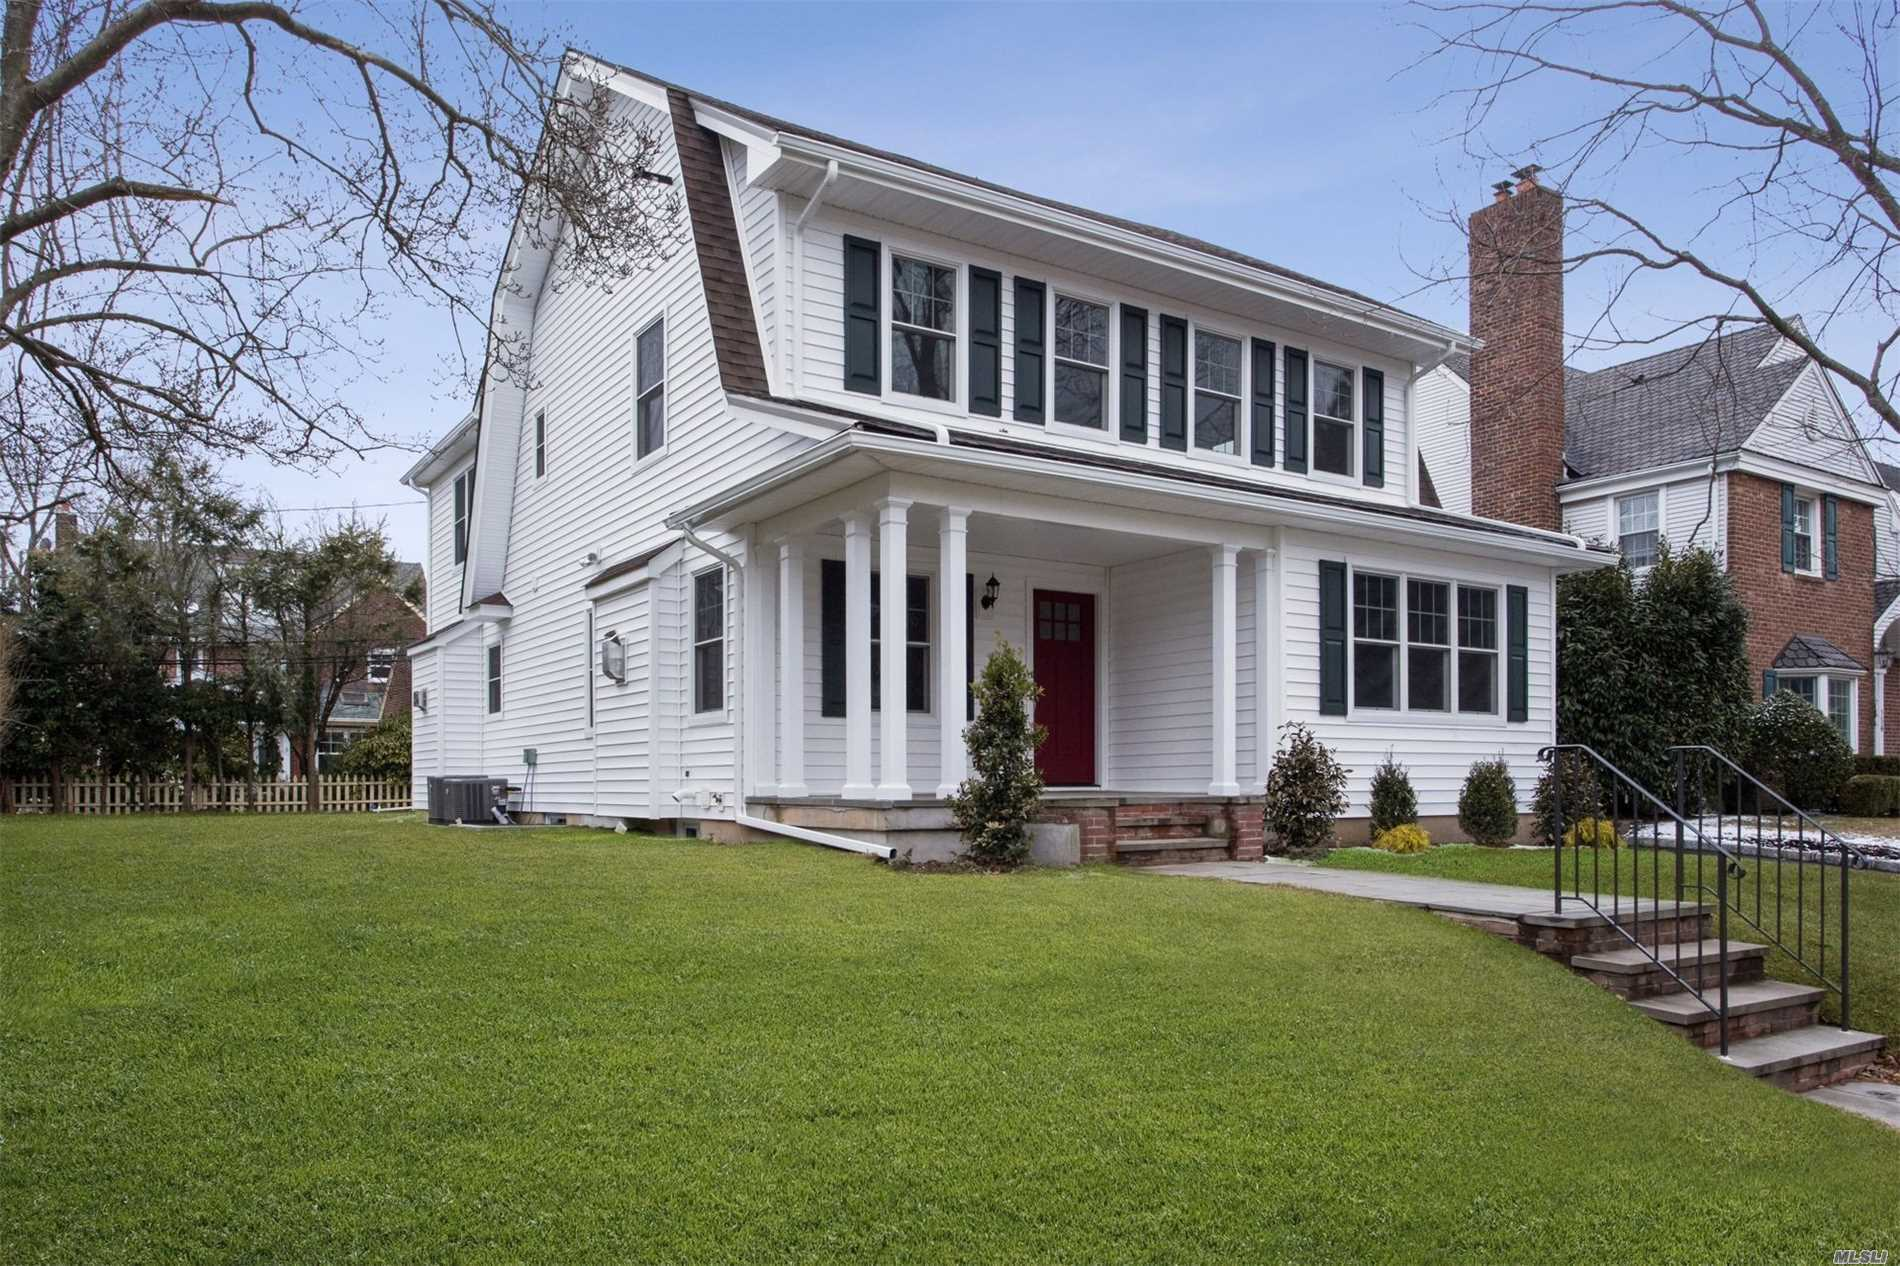 This beautiful Colonial situated mid-block in the heart of the Estates Section of town was completed renovated throughout. First flr features LR w/fp & gourmet kit w/island flows into family rm w/fp. Sizable FDR, office, mud & pwdr rms. Second flr boasts mbr suite w/vaulted ceilings, wic & gorgeous bath & 3 addl Brs serviced by hall bath. Finished bsmt provides rec rm & bath. All new mechanics w/ 2 zones Cac & Heat.The location & superior build quality make this the perfect place to call home!